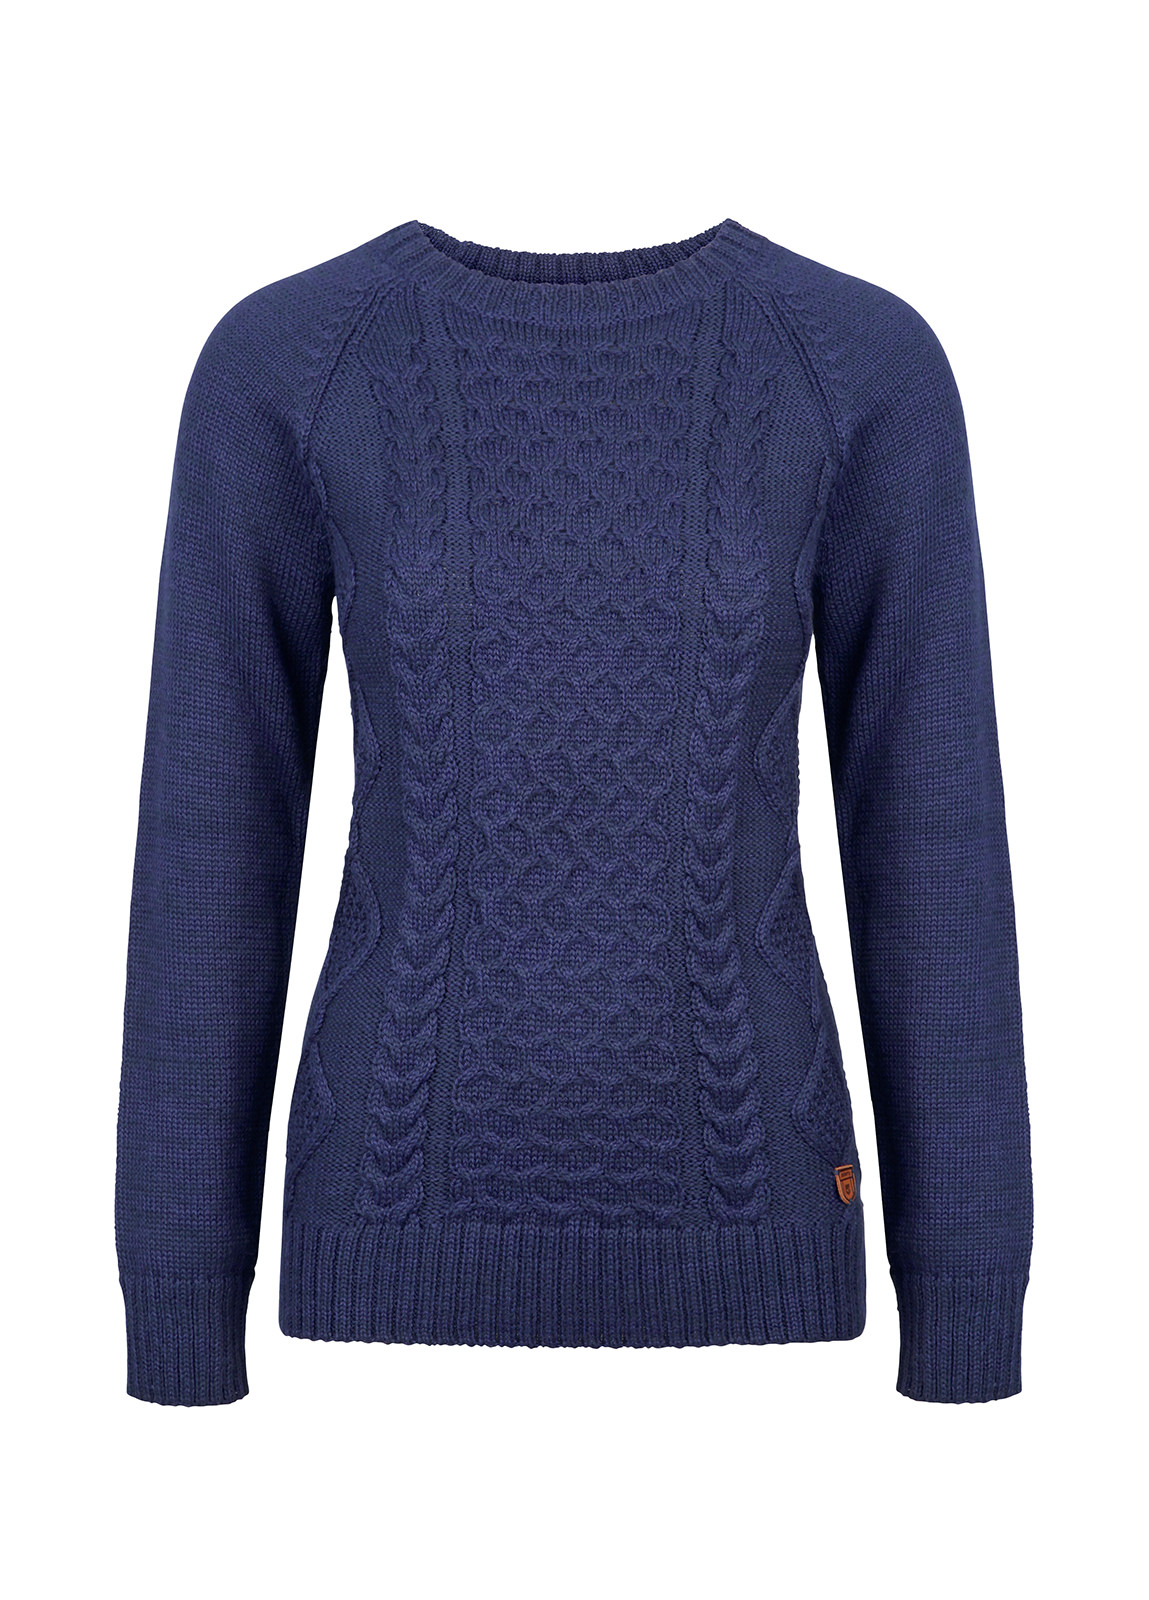 Dubarry_Shandon Ladies Cable Knit Sweater - French Navy_Image_2